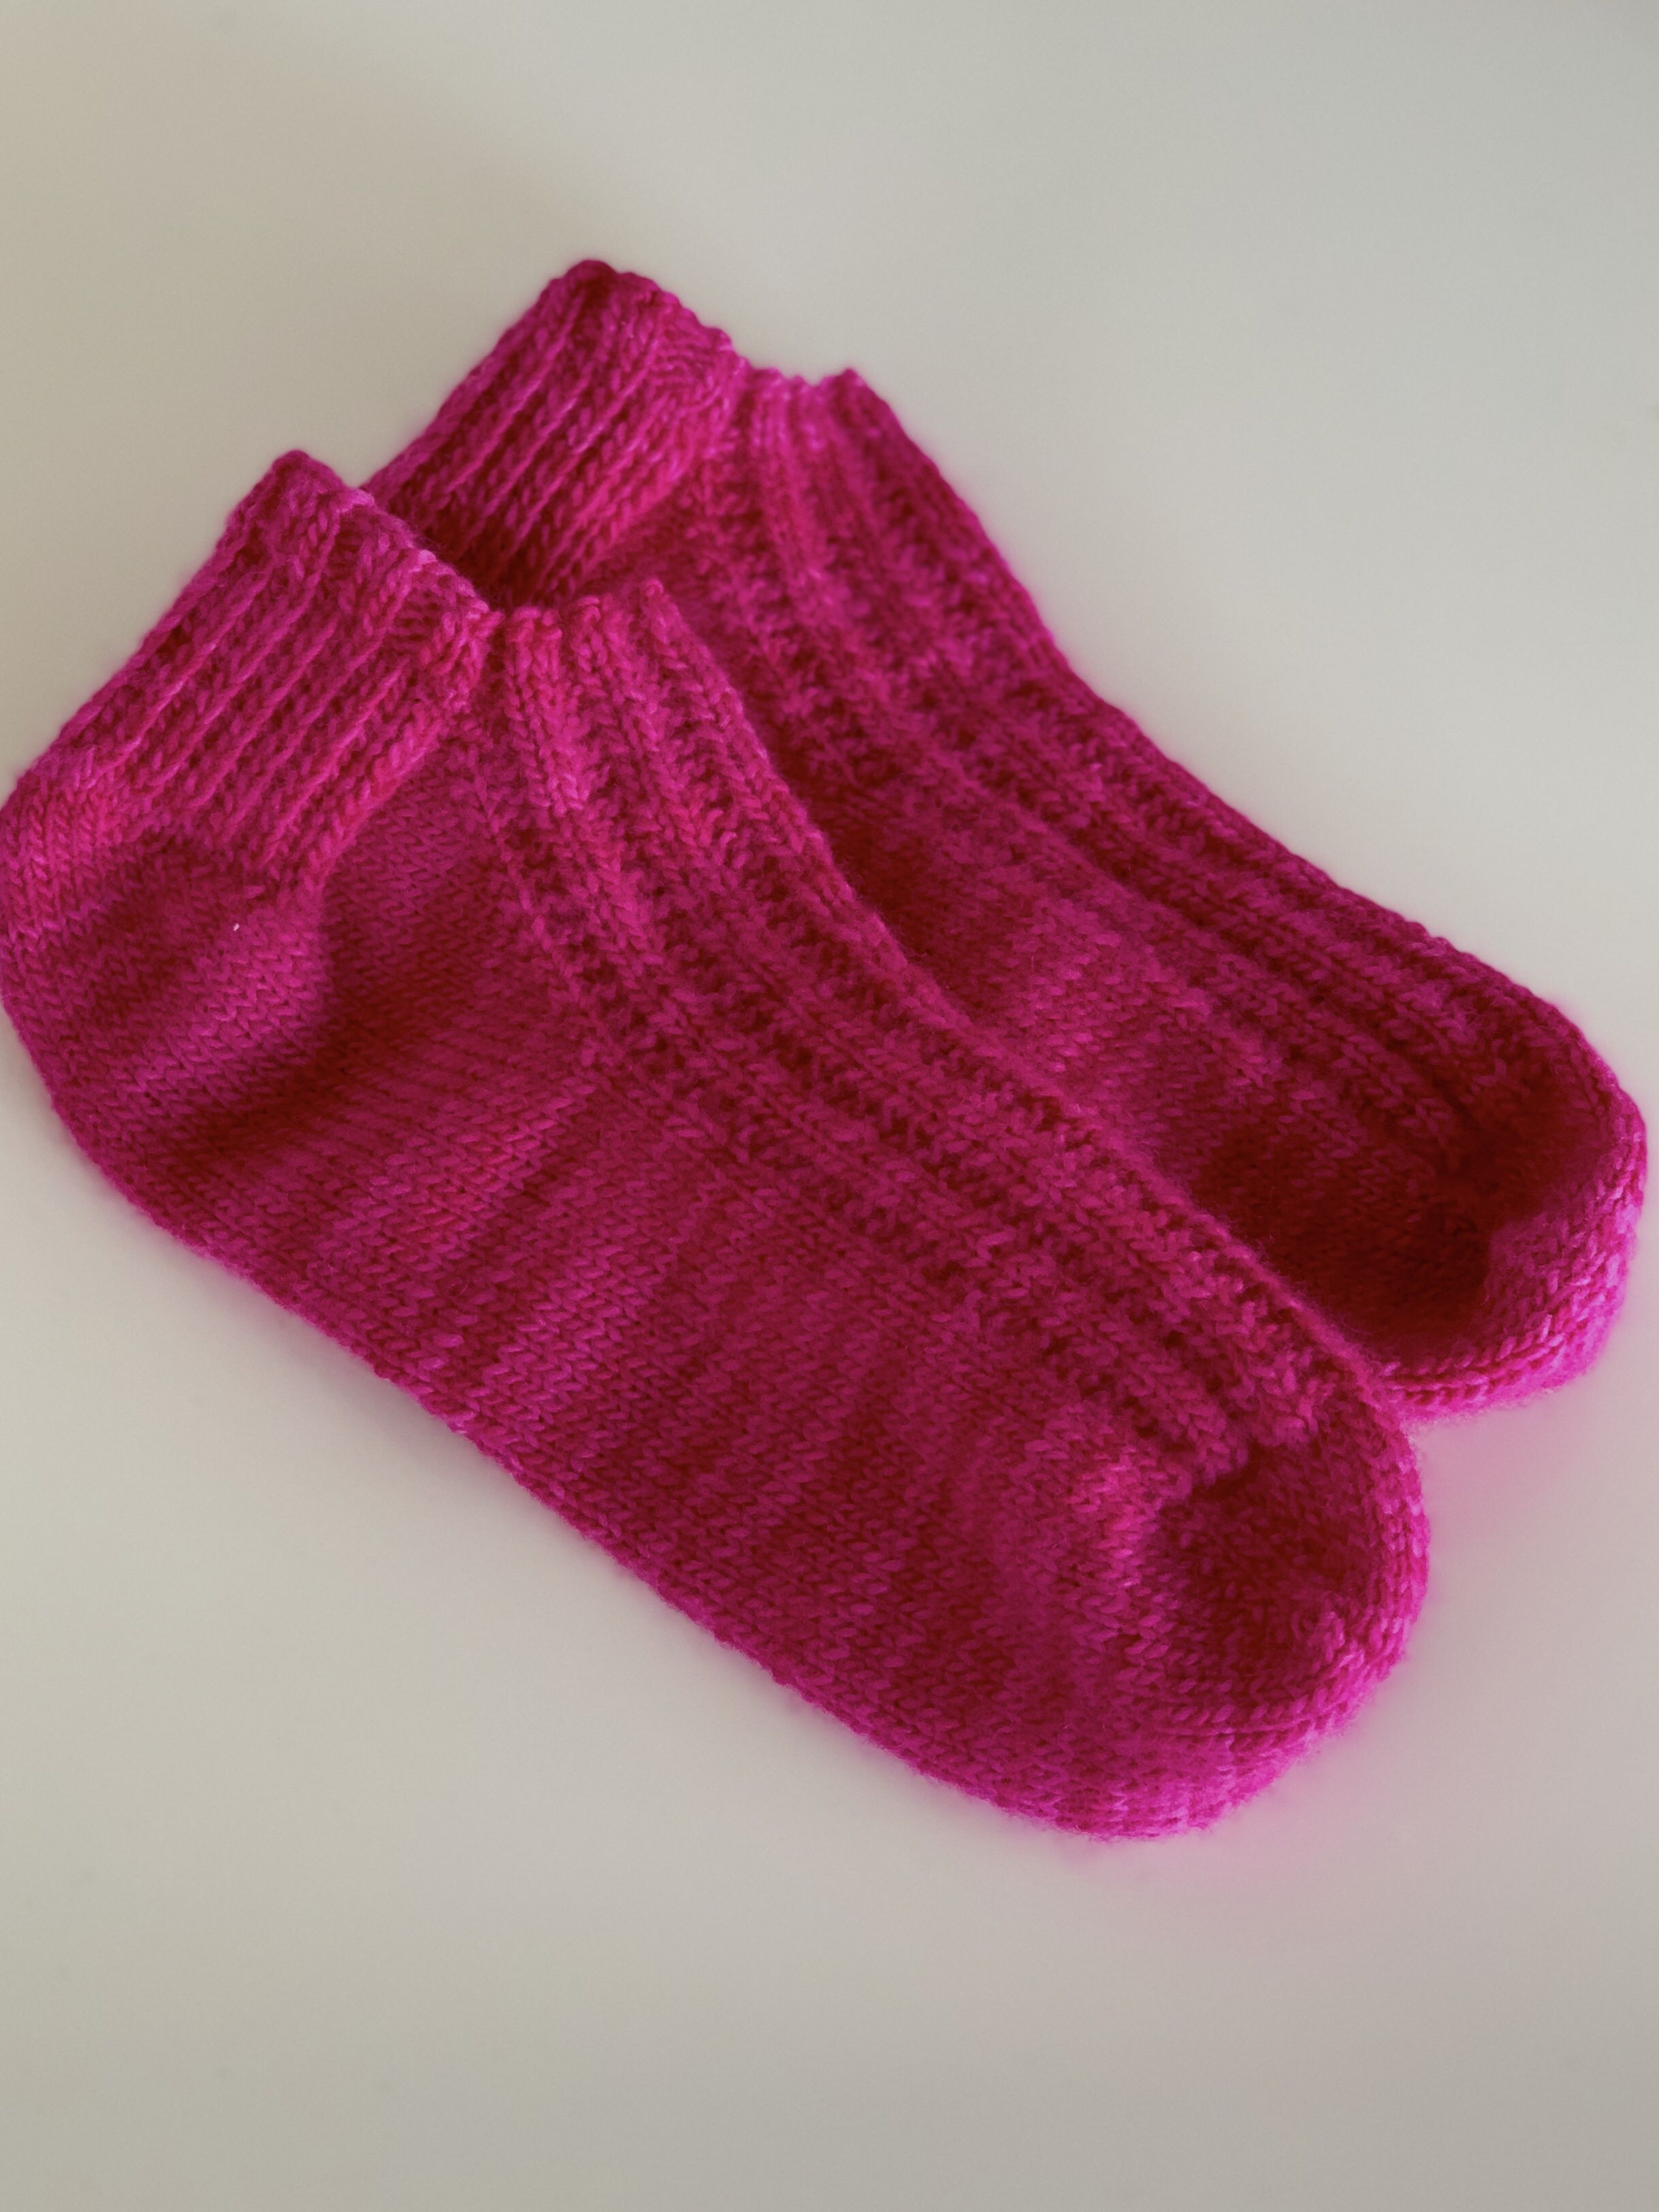 29d91060e578 Hand knitted stunning pink ankle socks. These are 100% pink variegated  wool. So soft and so comfortable to wear and not itchy like some wool can  be.